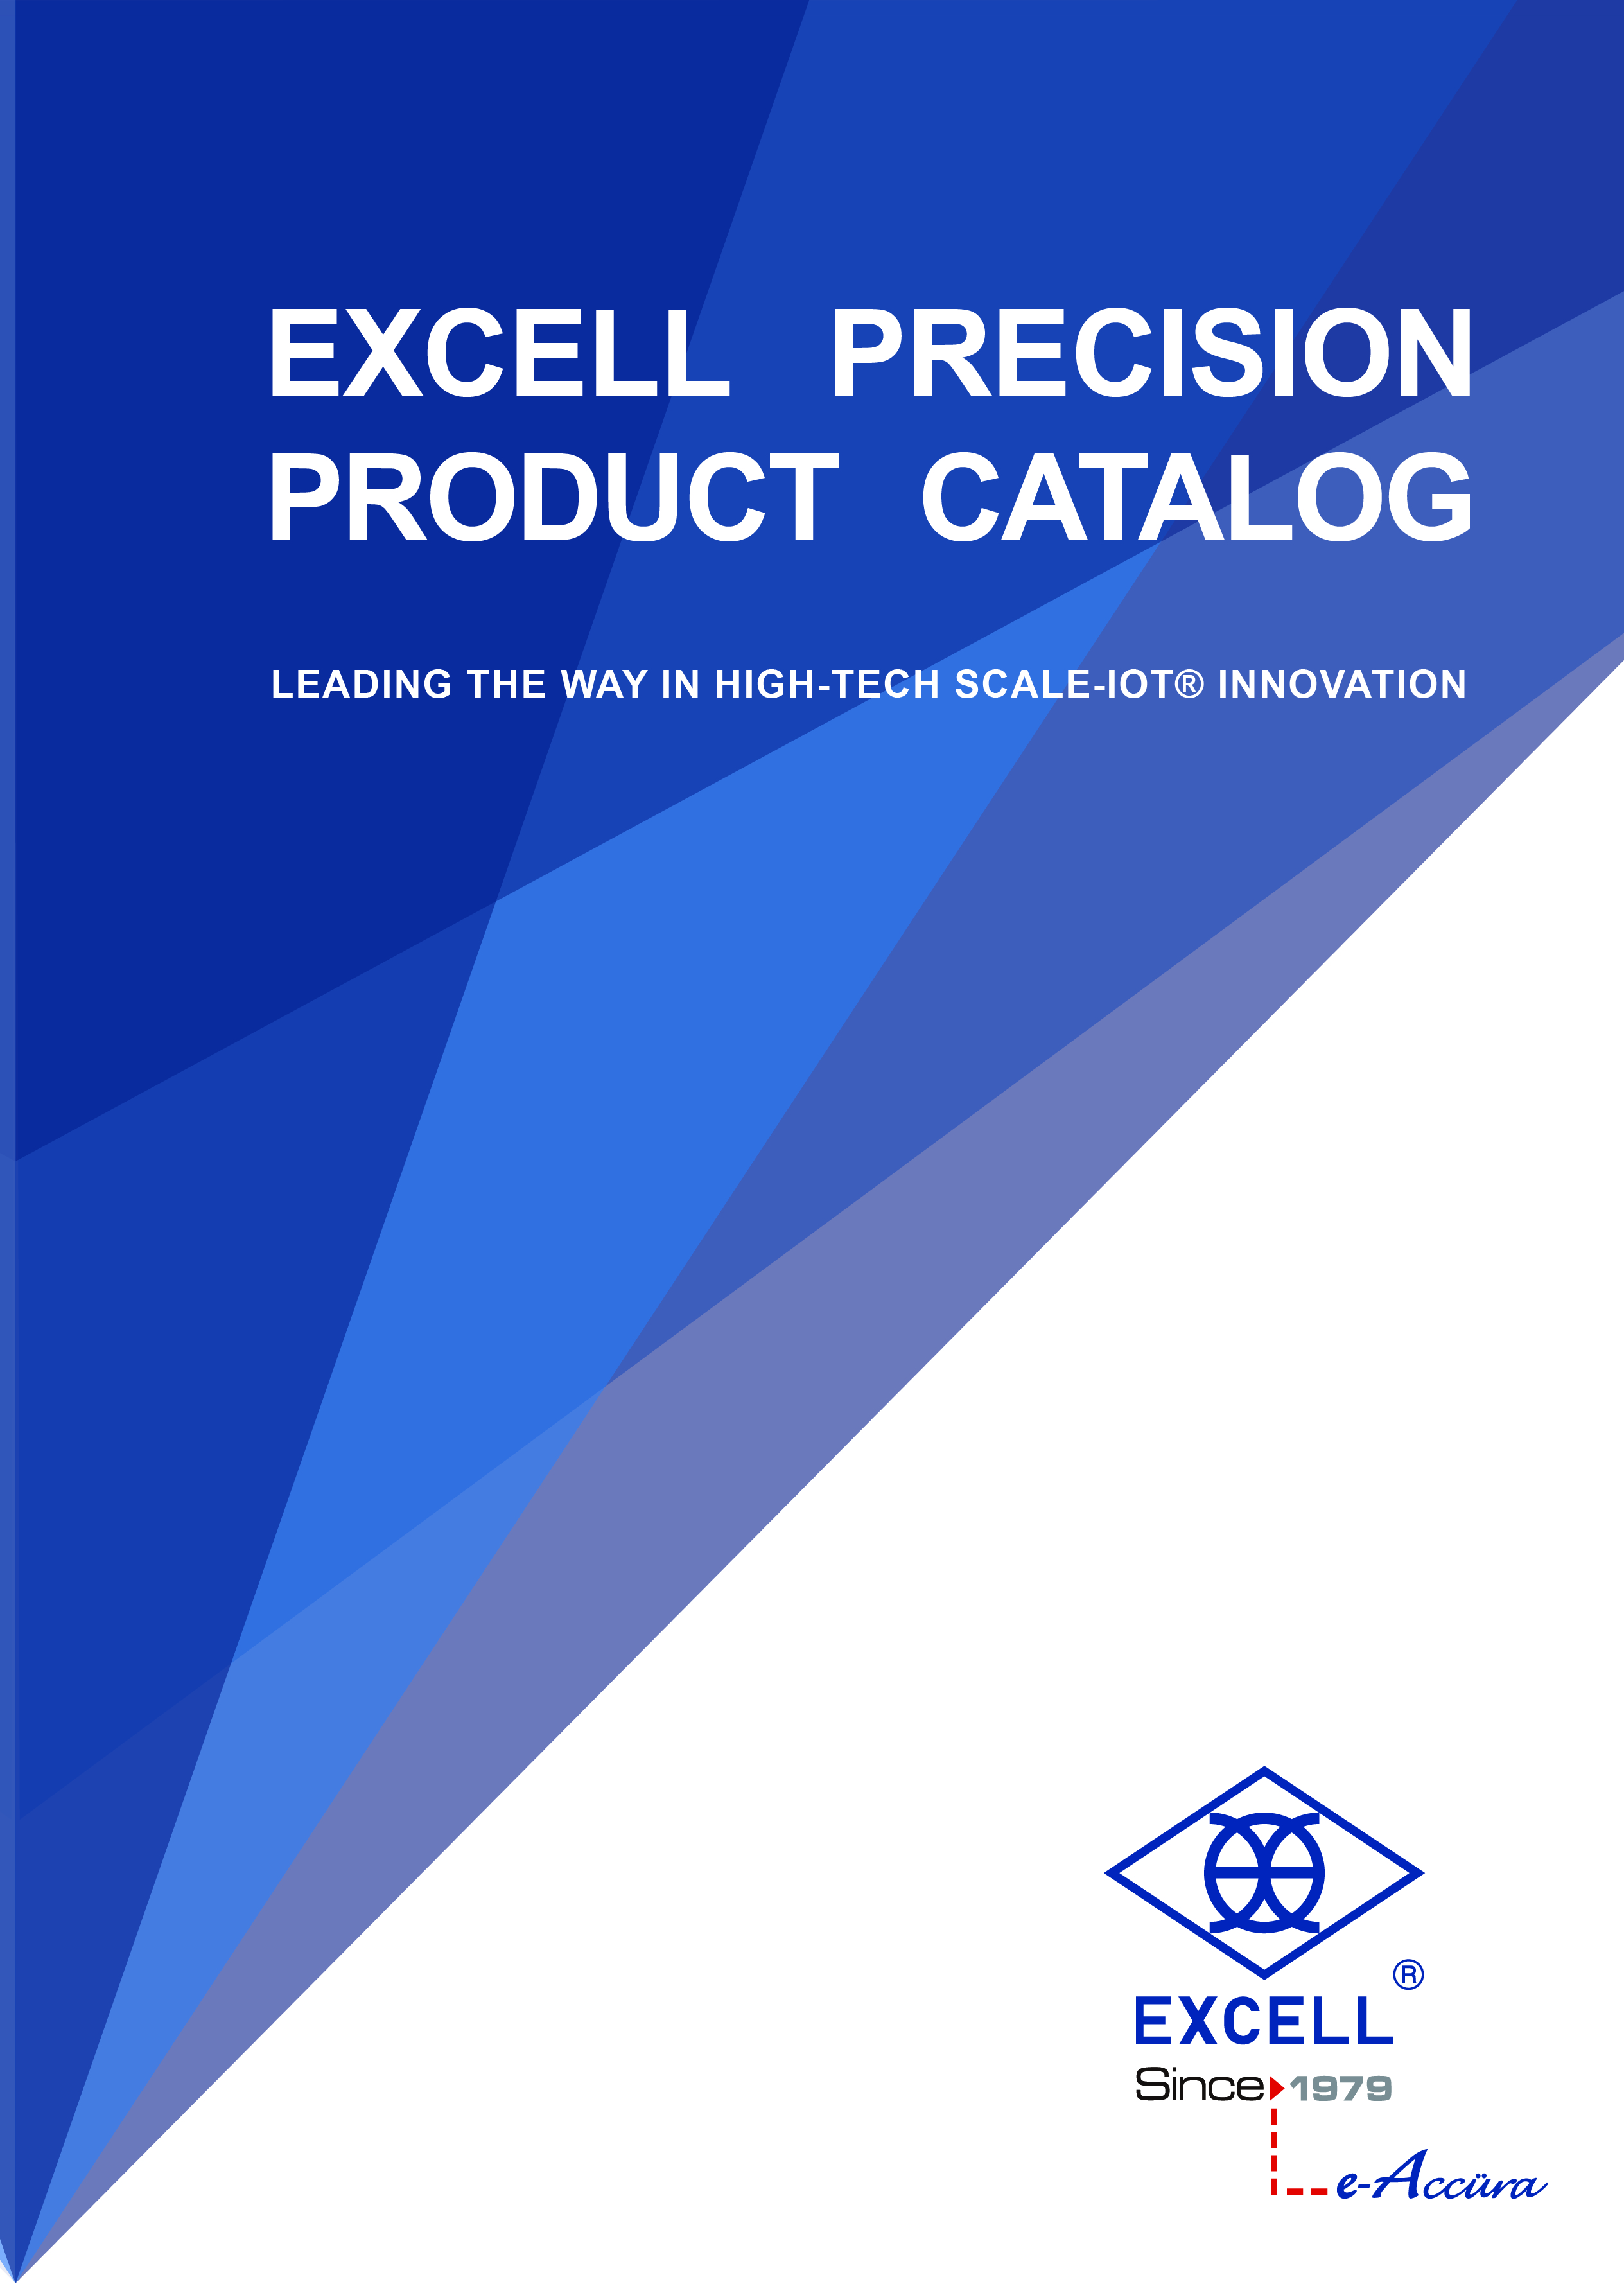 EXCELL PRECISION PRODUCT CATALOG